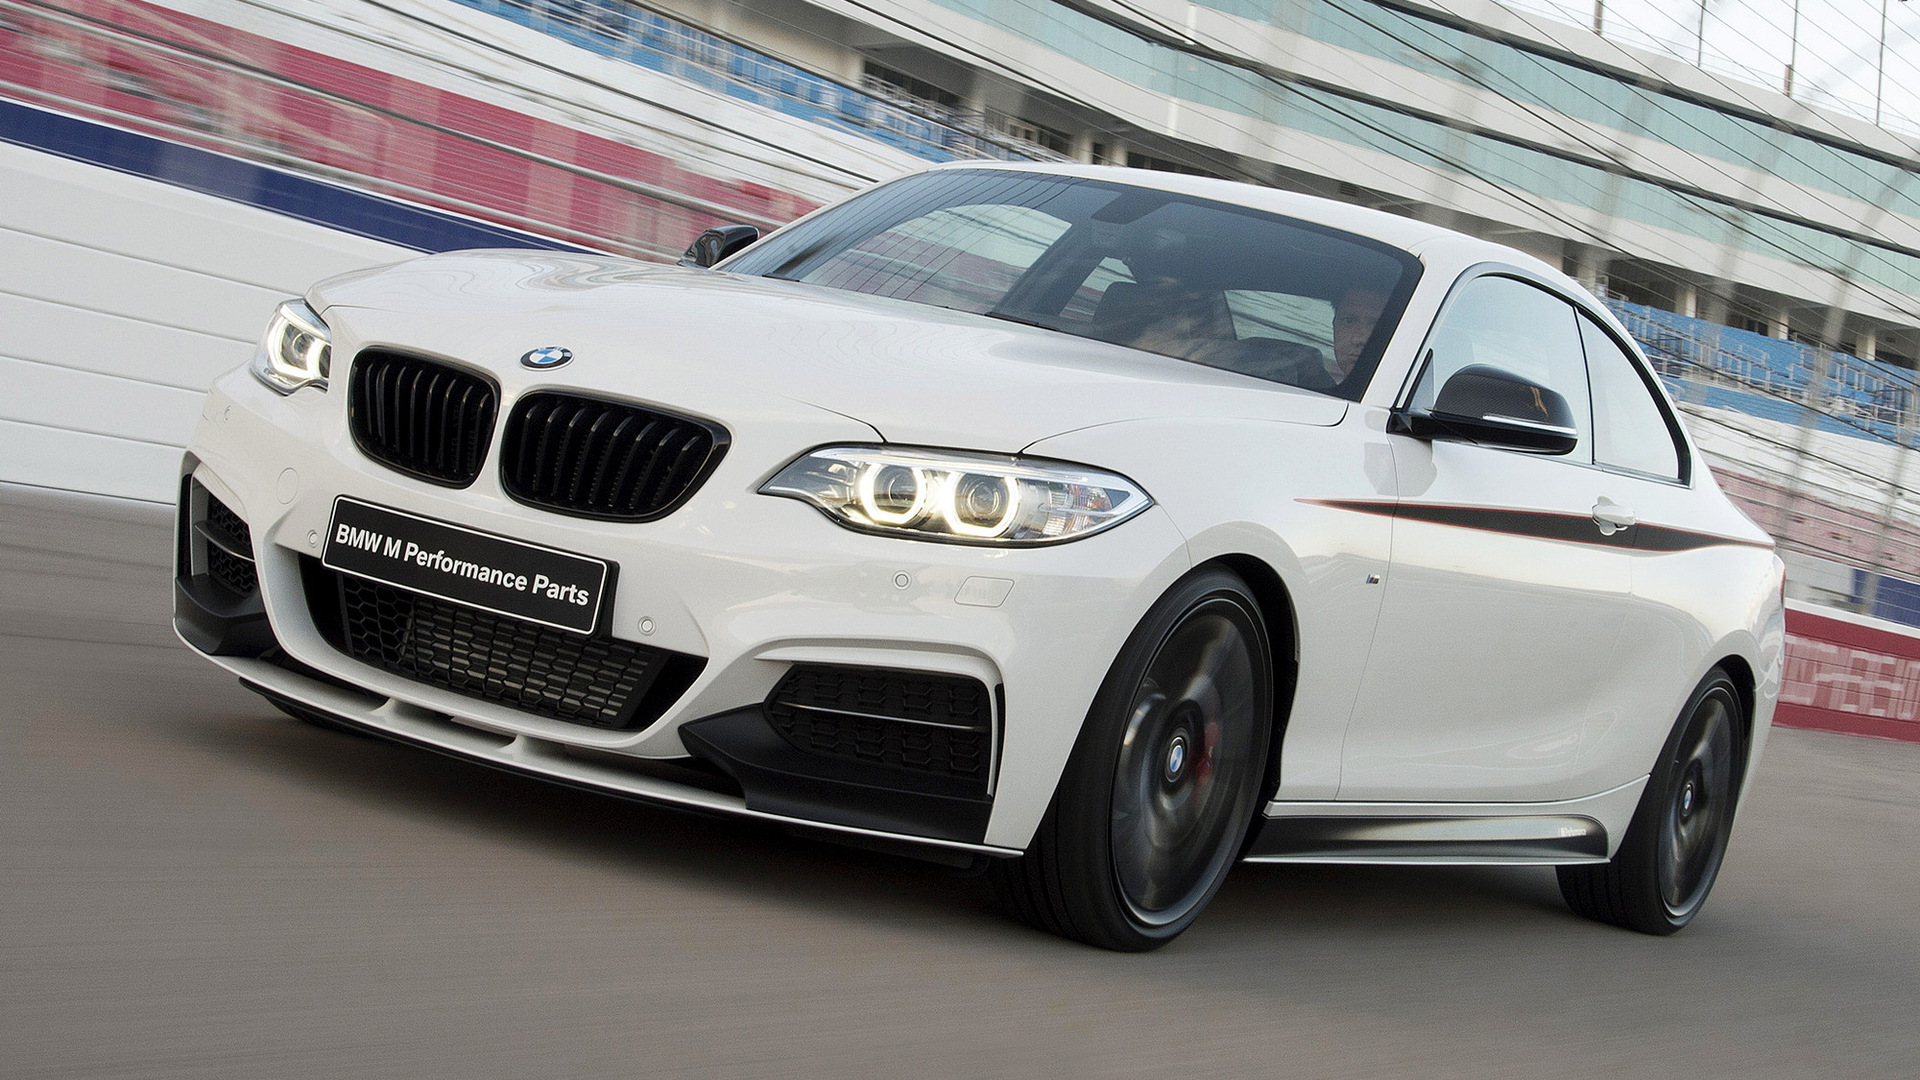 Consumer Reports Most Reliable List - Sporty Car Winner Is ...